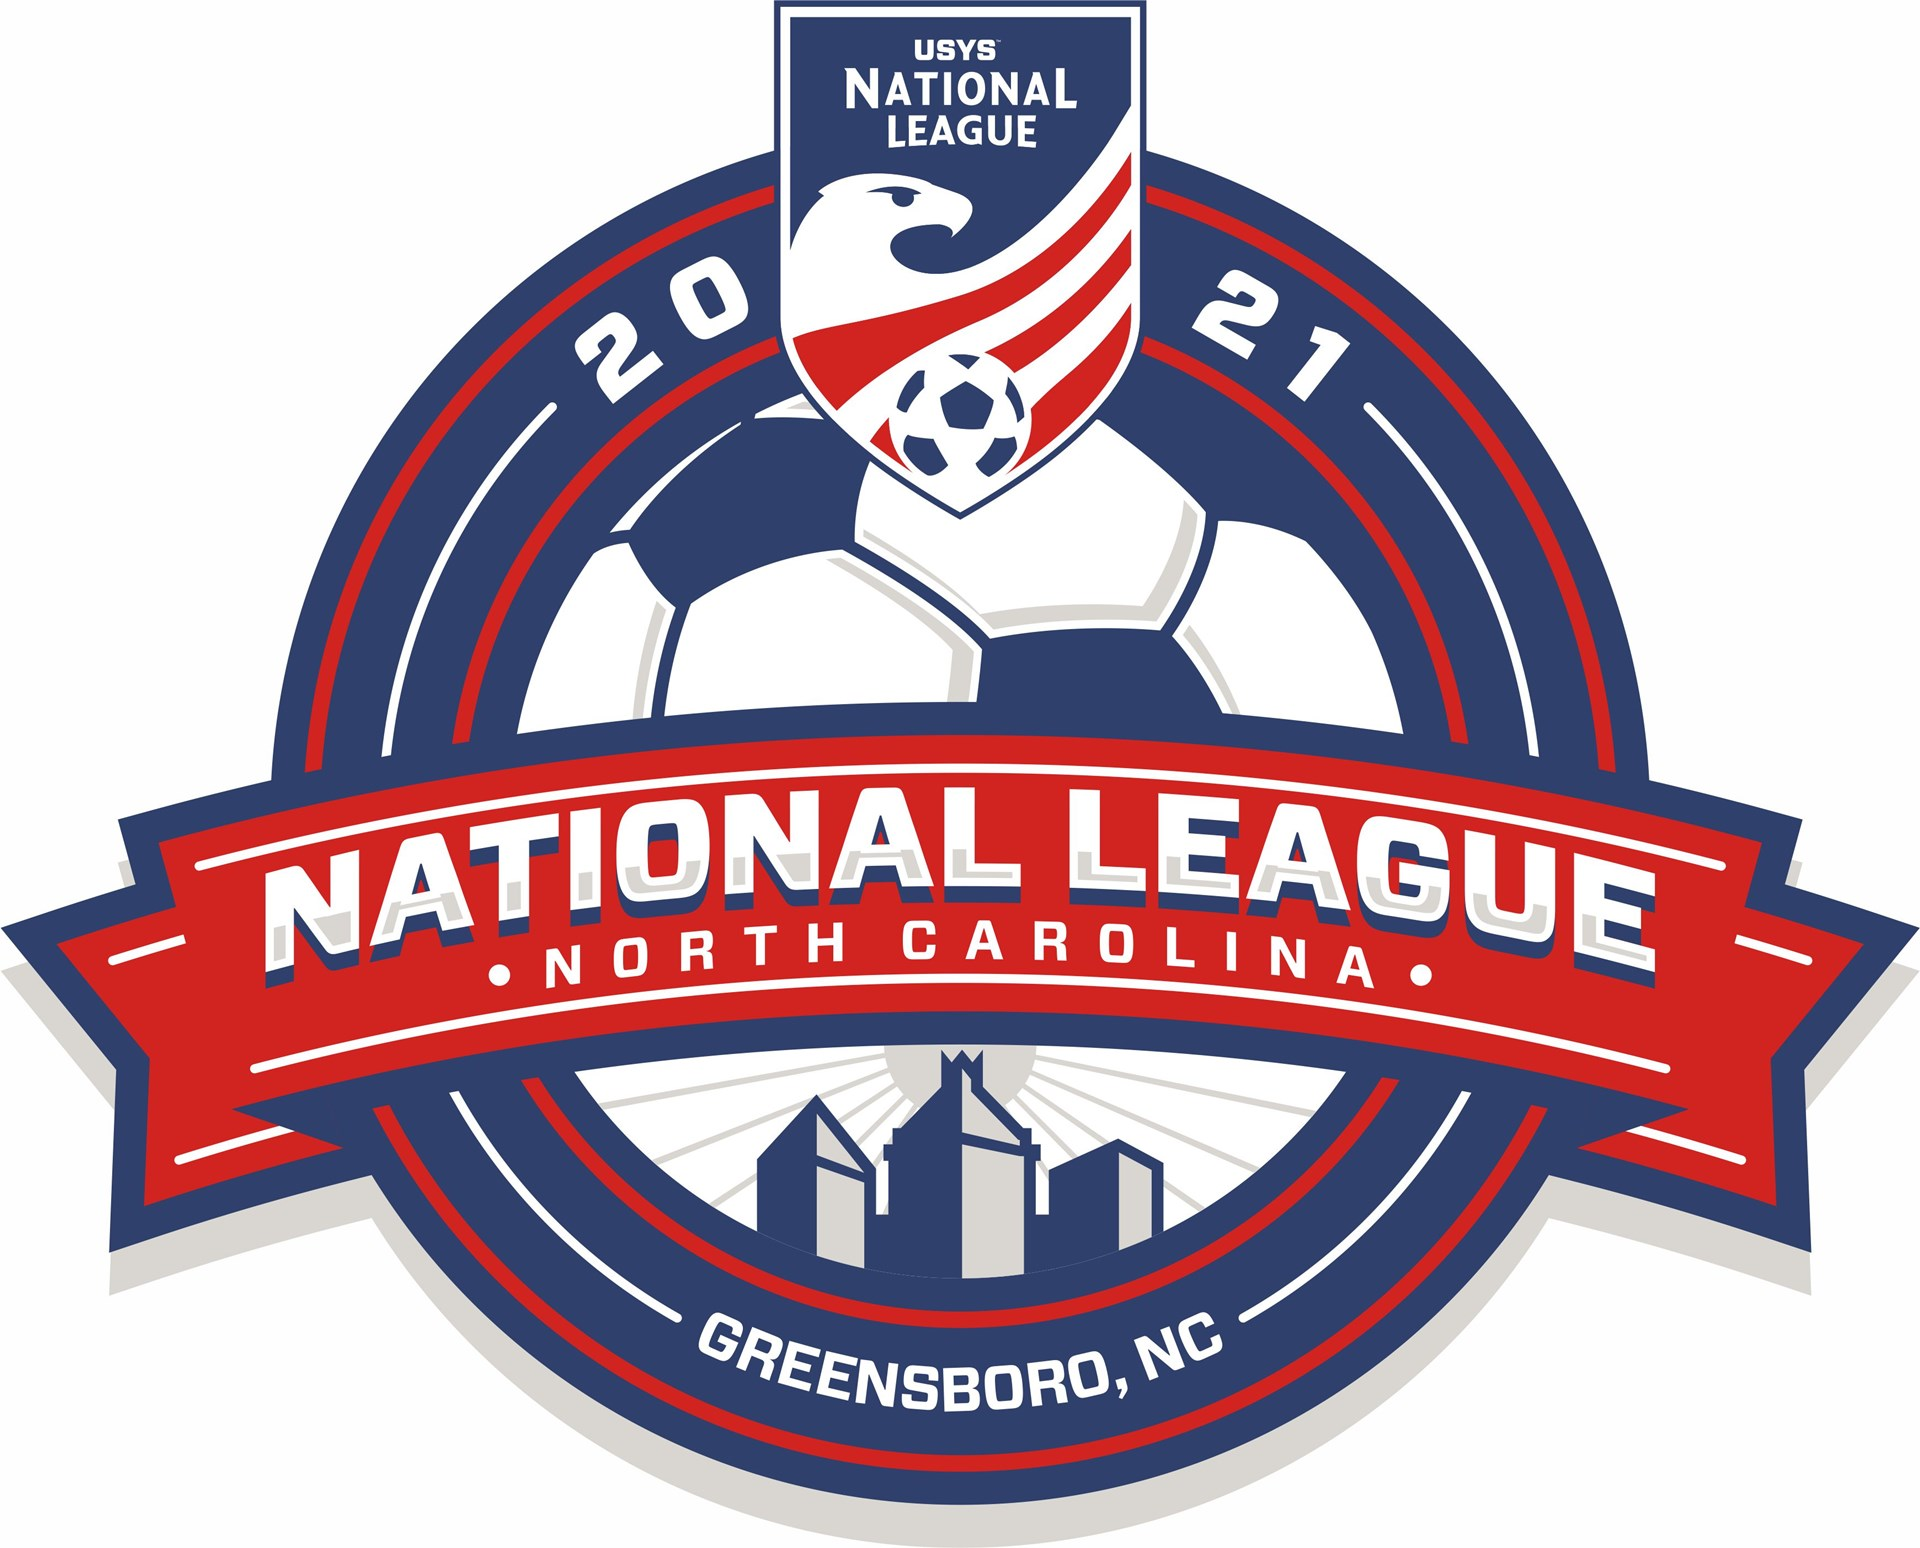 2021-USYS-NationalLeague-NC-white